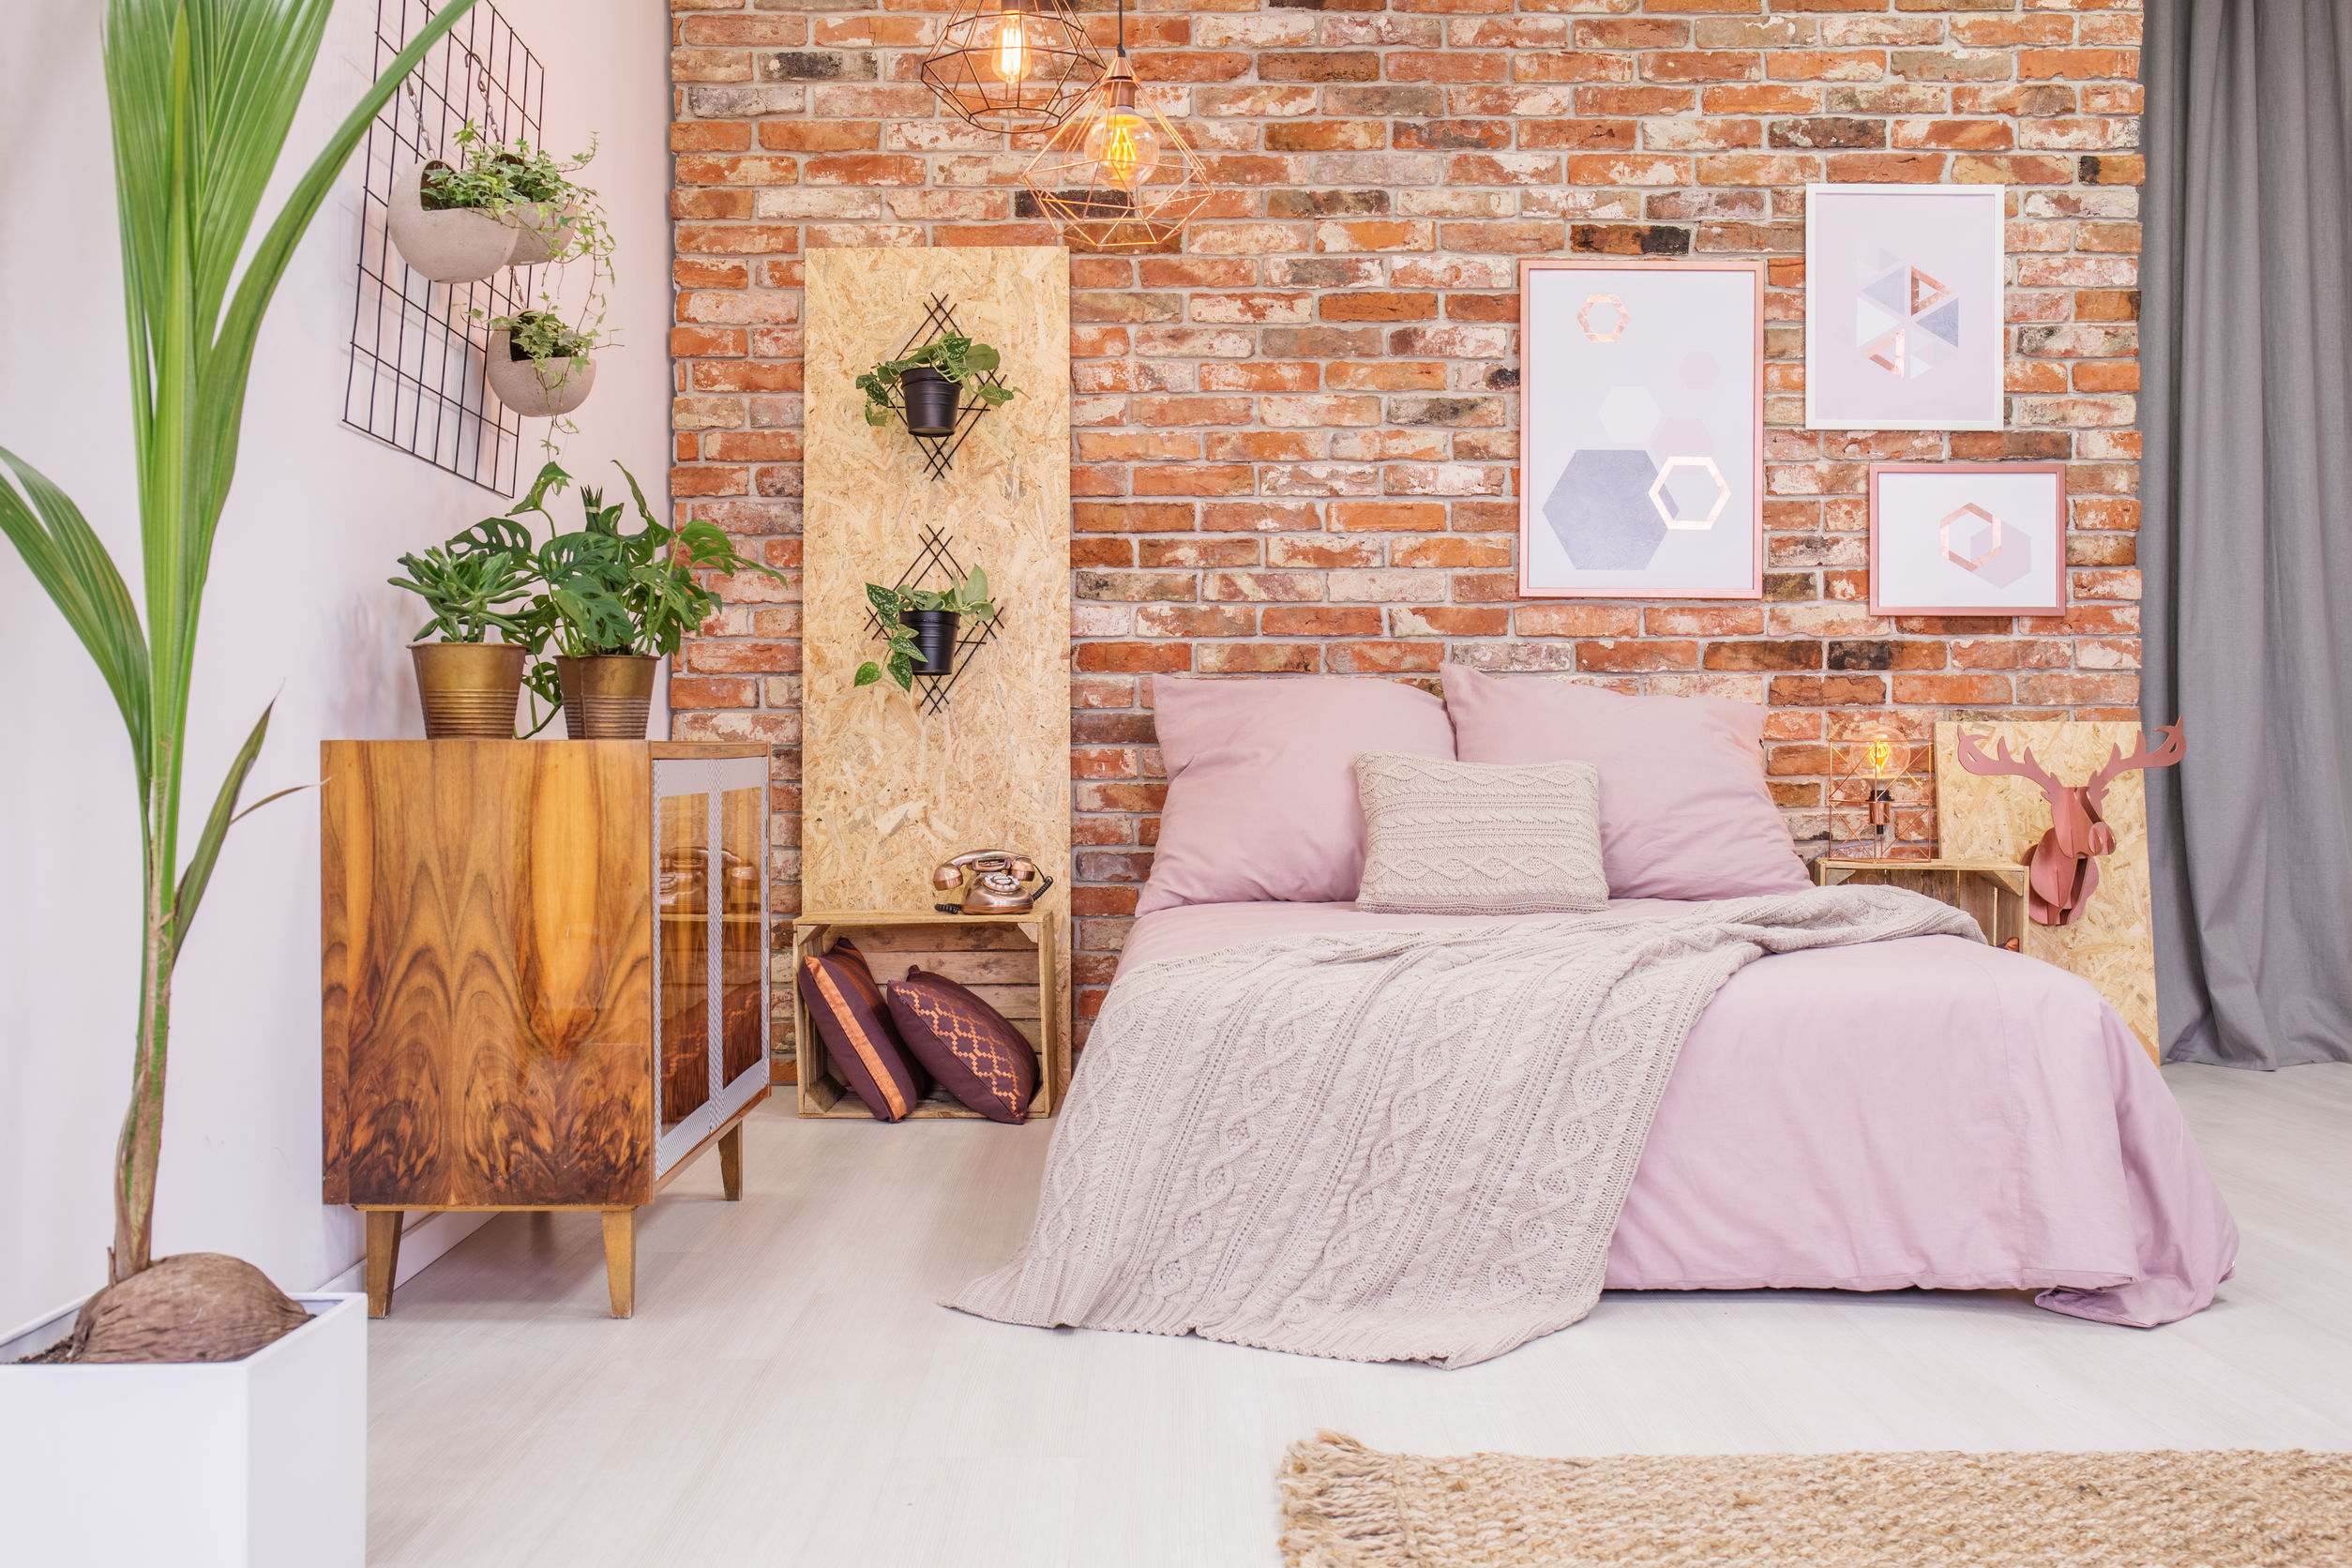 Go Eco-friendly With These Condo Design Tips and Life Hacks